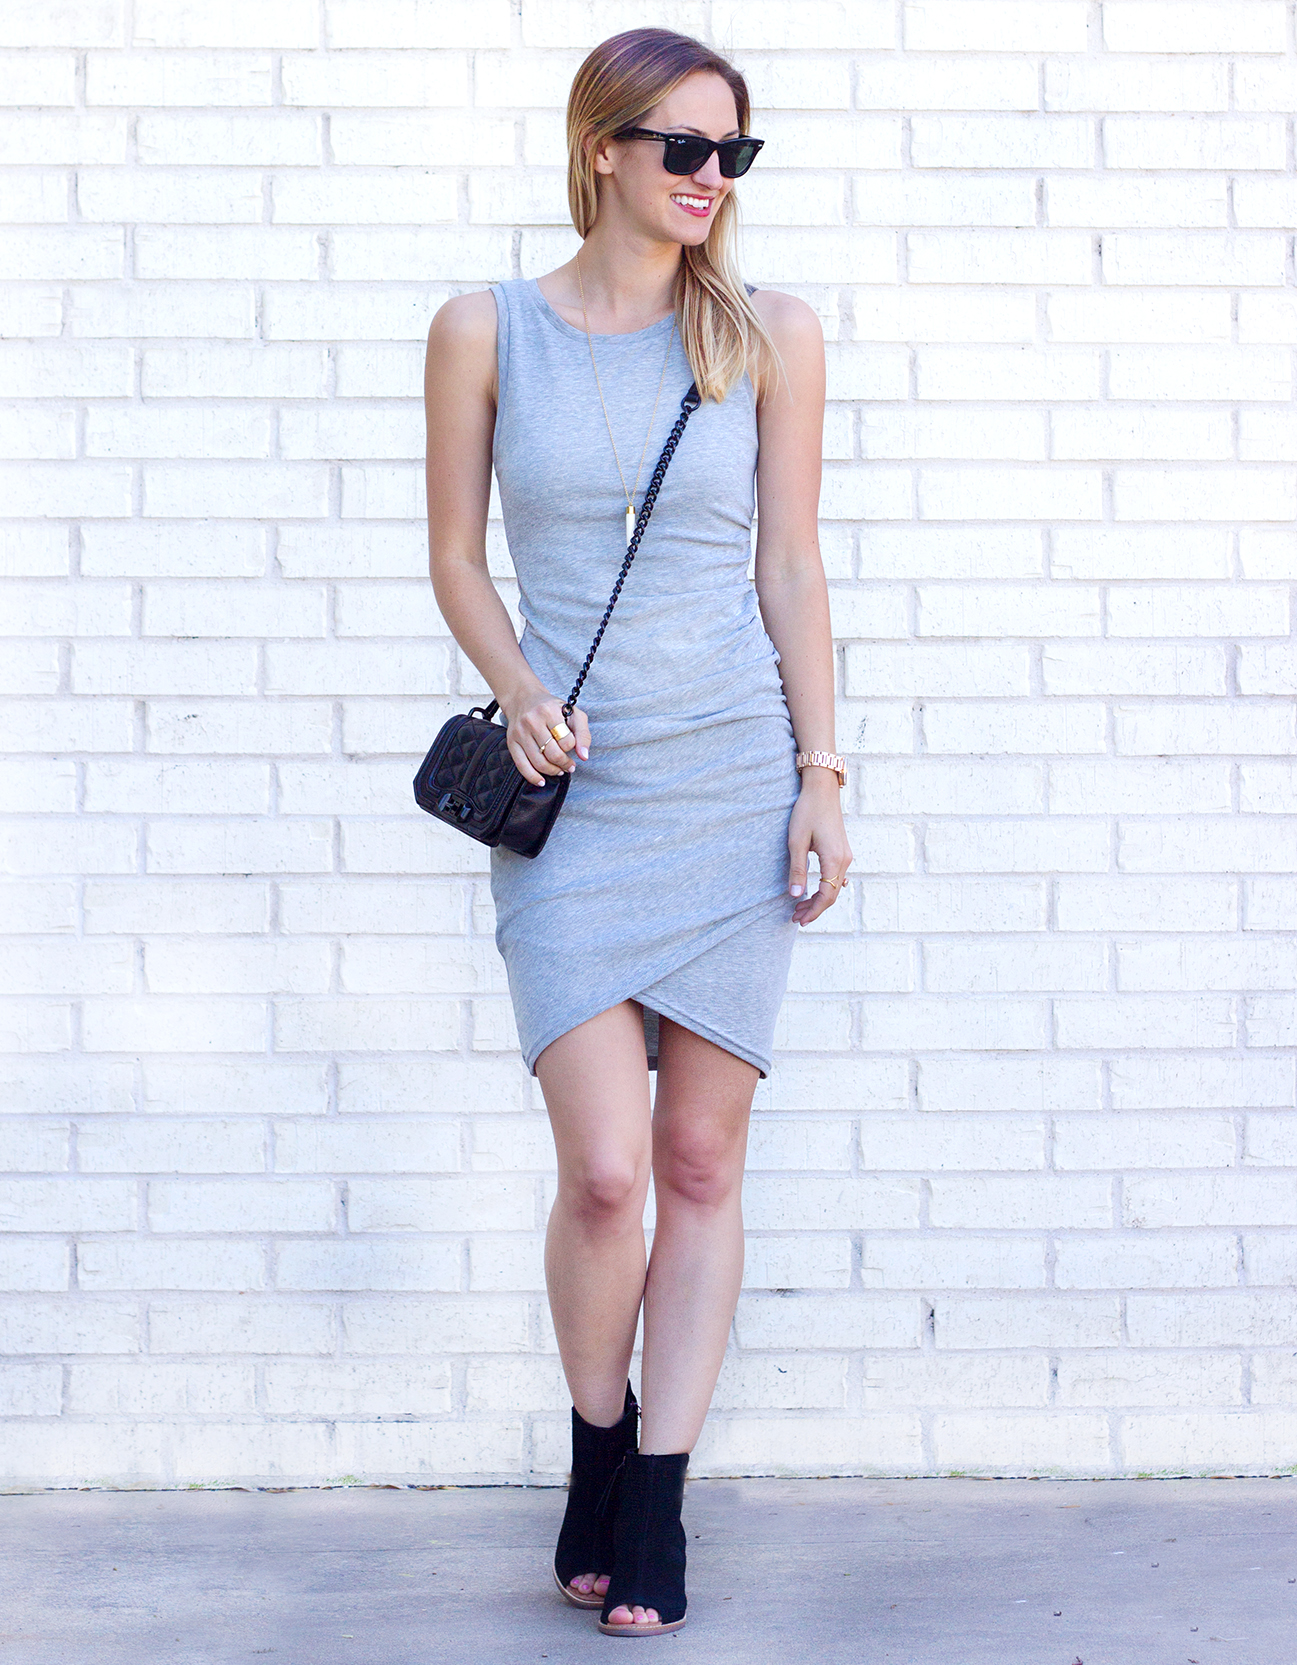 livvyland-blog-olivia-watson-leith-heather-grey-body-con-dress-toms-majorca-black-booties-austin-texas-fashion-blogger-spring-outfit-rayban-wayfarer-311